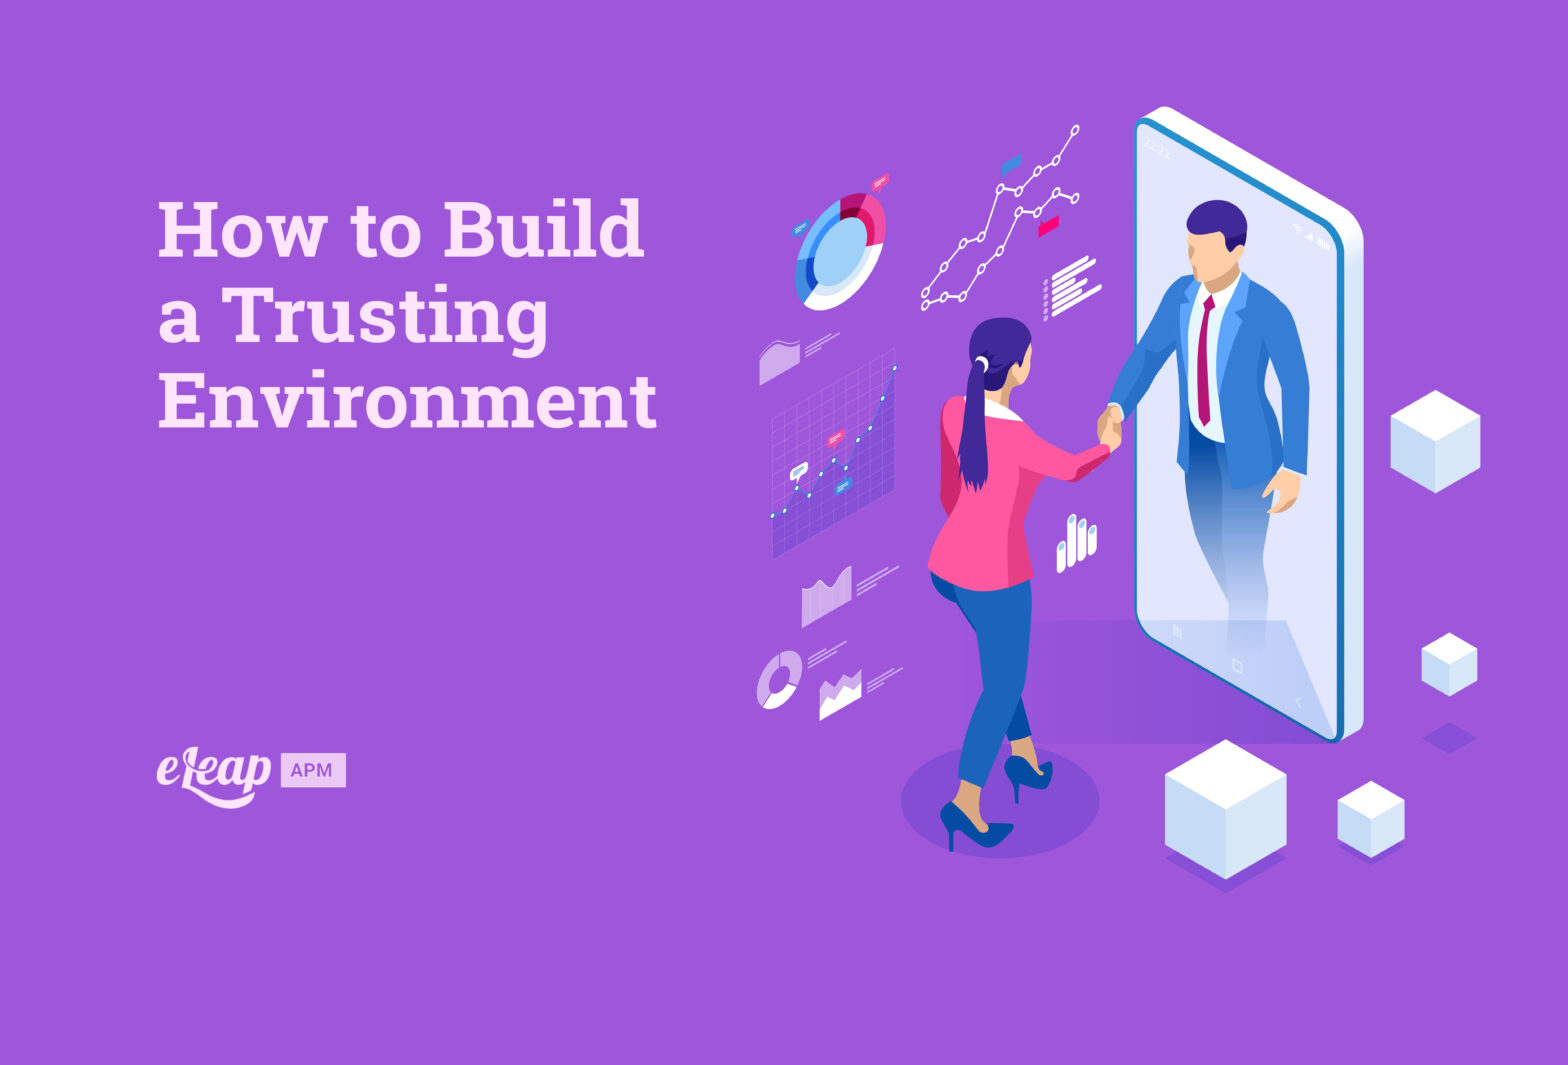 How to Build a Trusting Environment